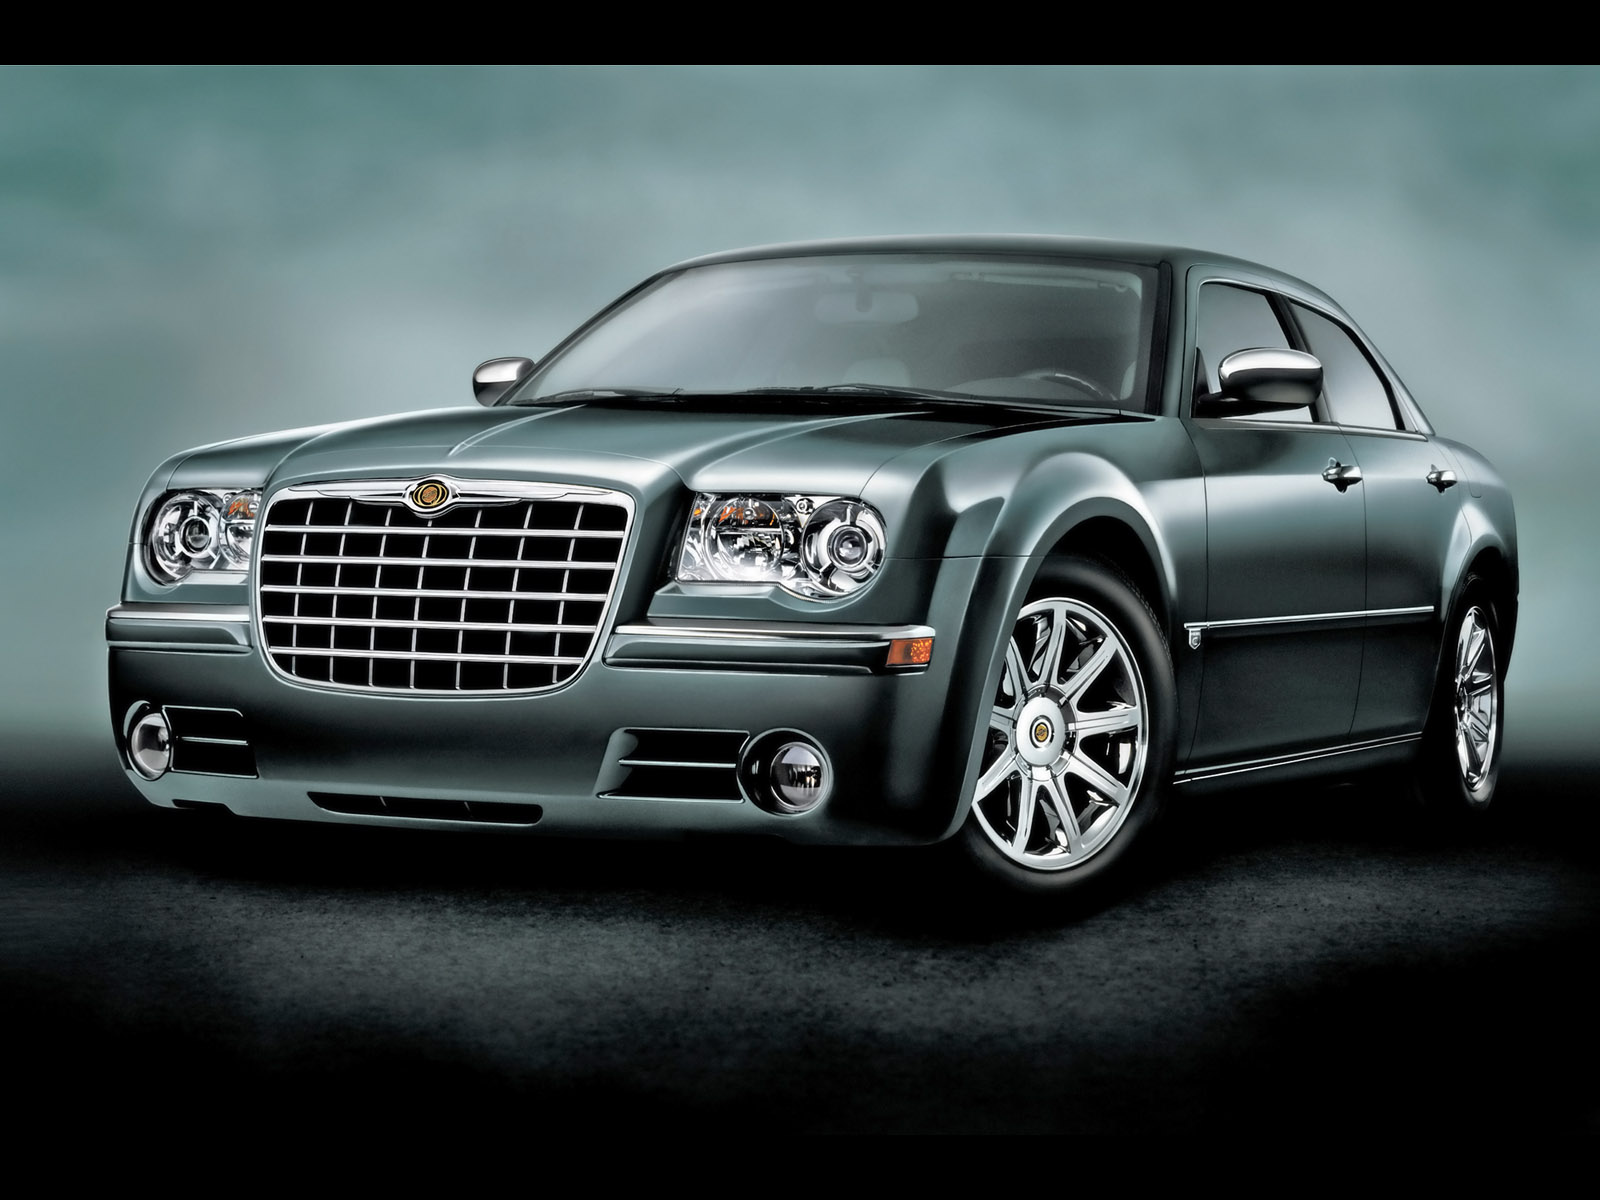 Chrysler 300M 2005